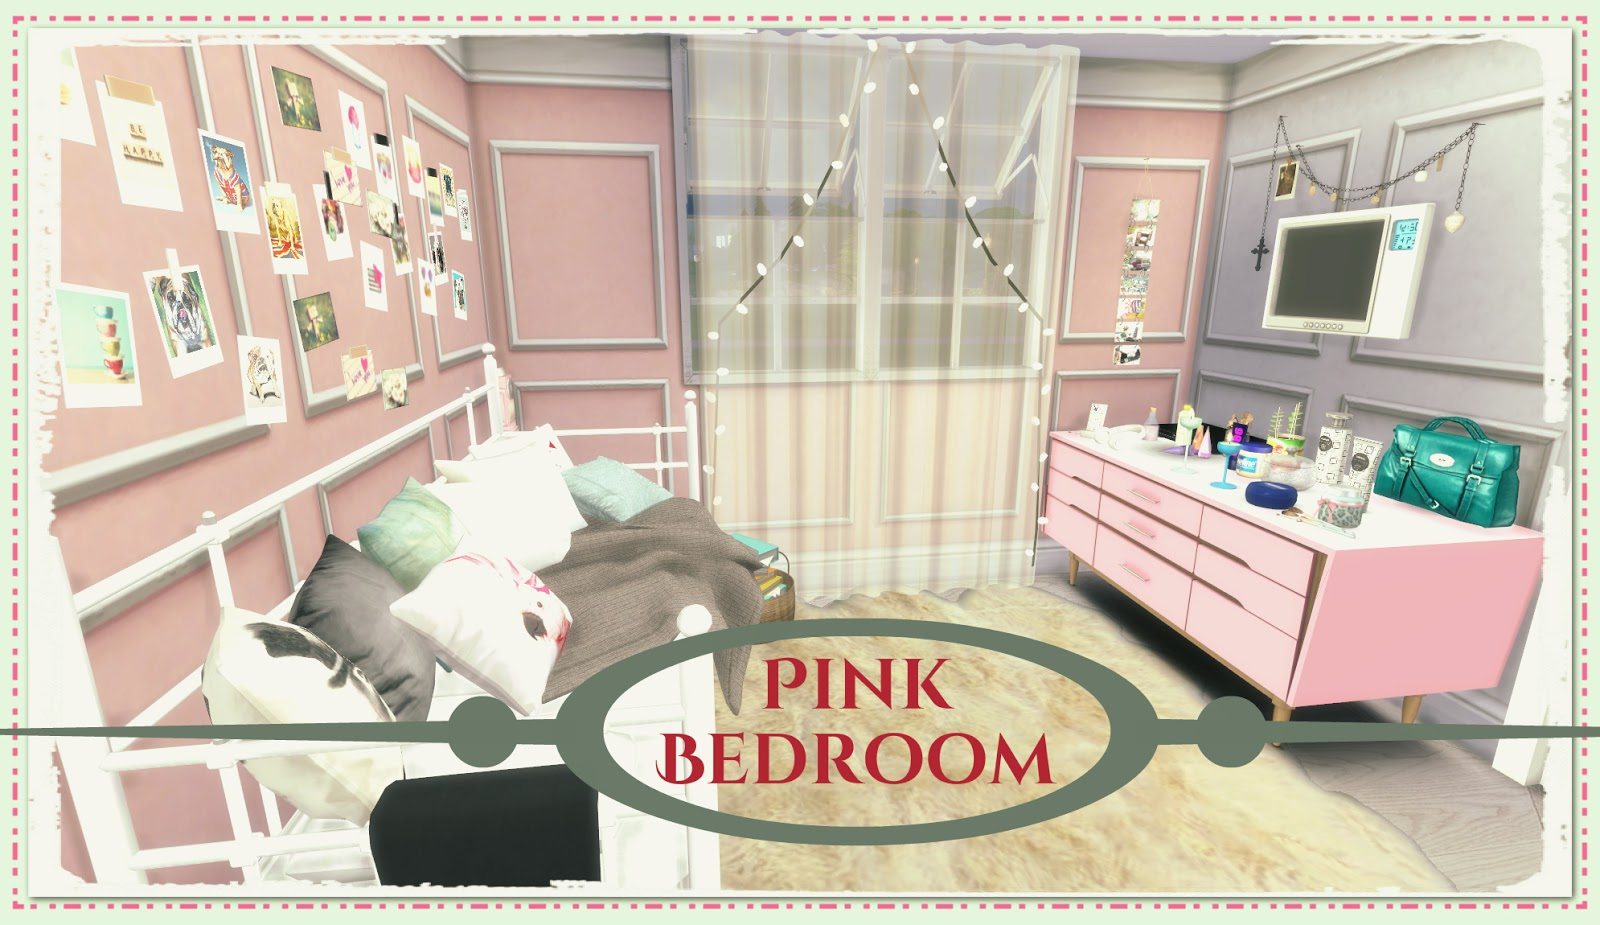 Sims 4 pink bedroom dinha for 4 bedroom